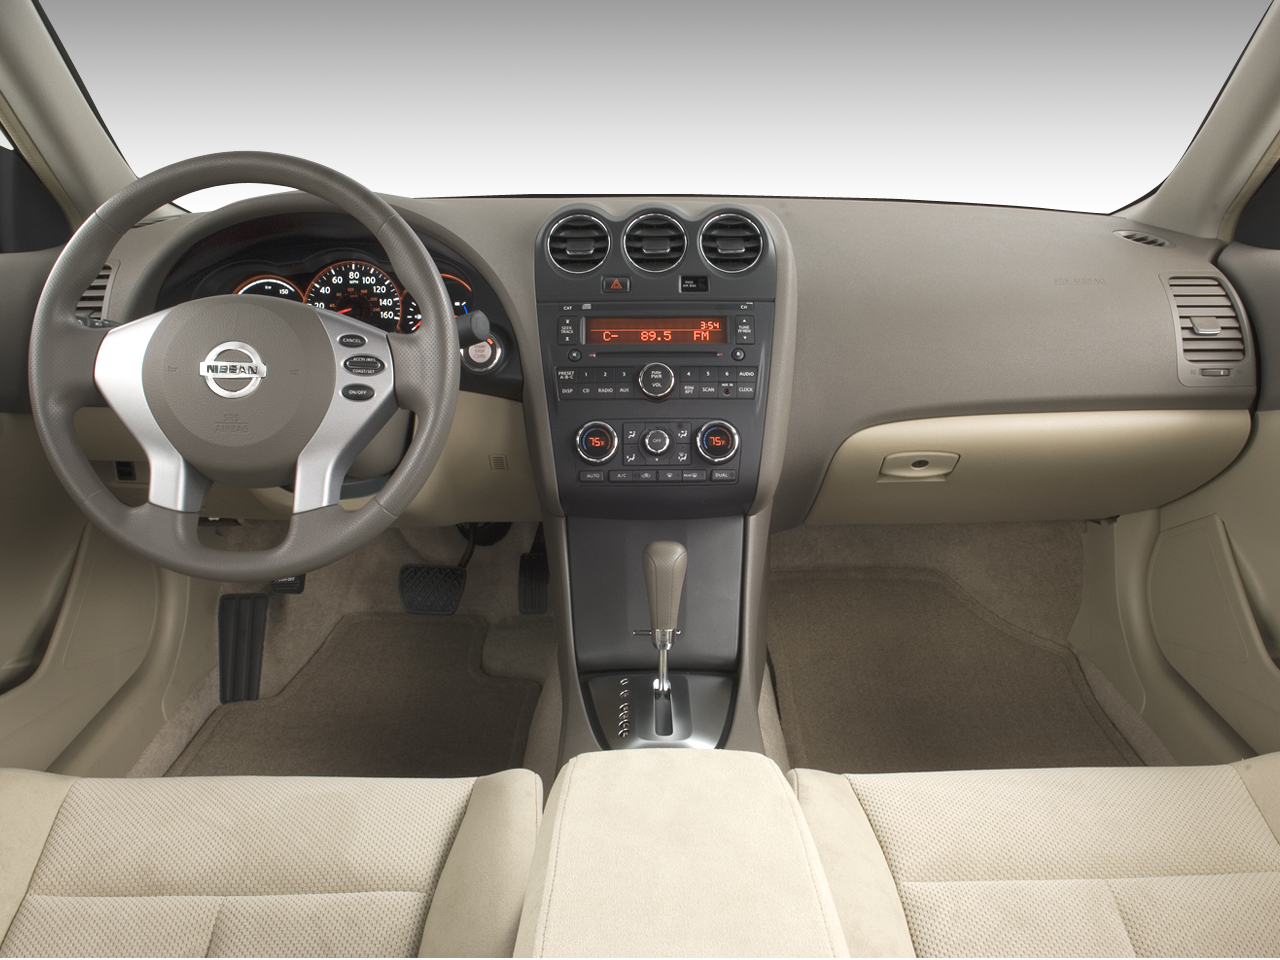 2012 nissan altima cloth interior choice image hd cars wallpaper 2013 nissan altima cloth interior images hd cars wallpaper 2009 nissan maxima white interior image collections vanachro Images